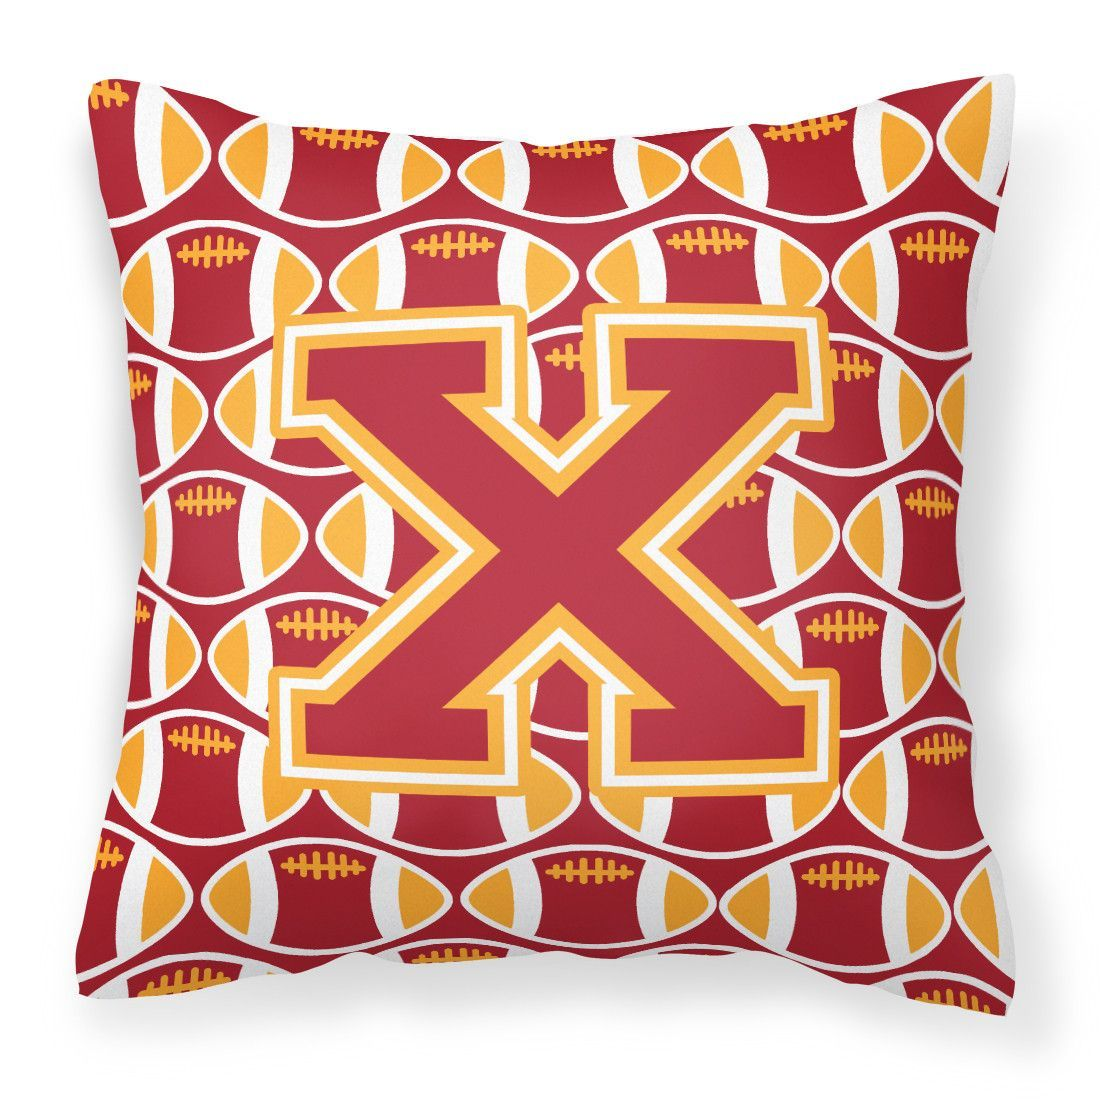 Letter X Football Cardinal and Gold Fabric Decorative Pillow CJ1070-XPW1414